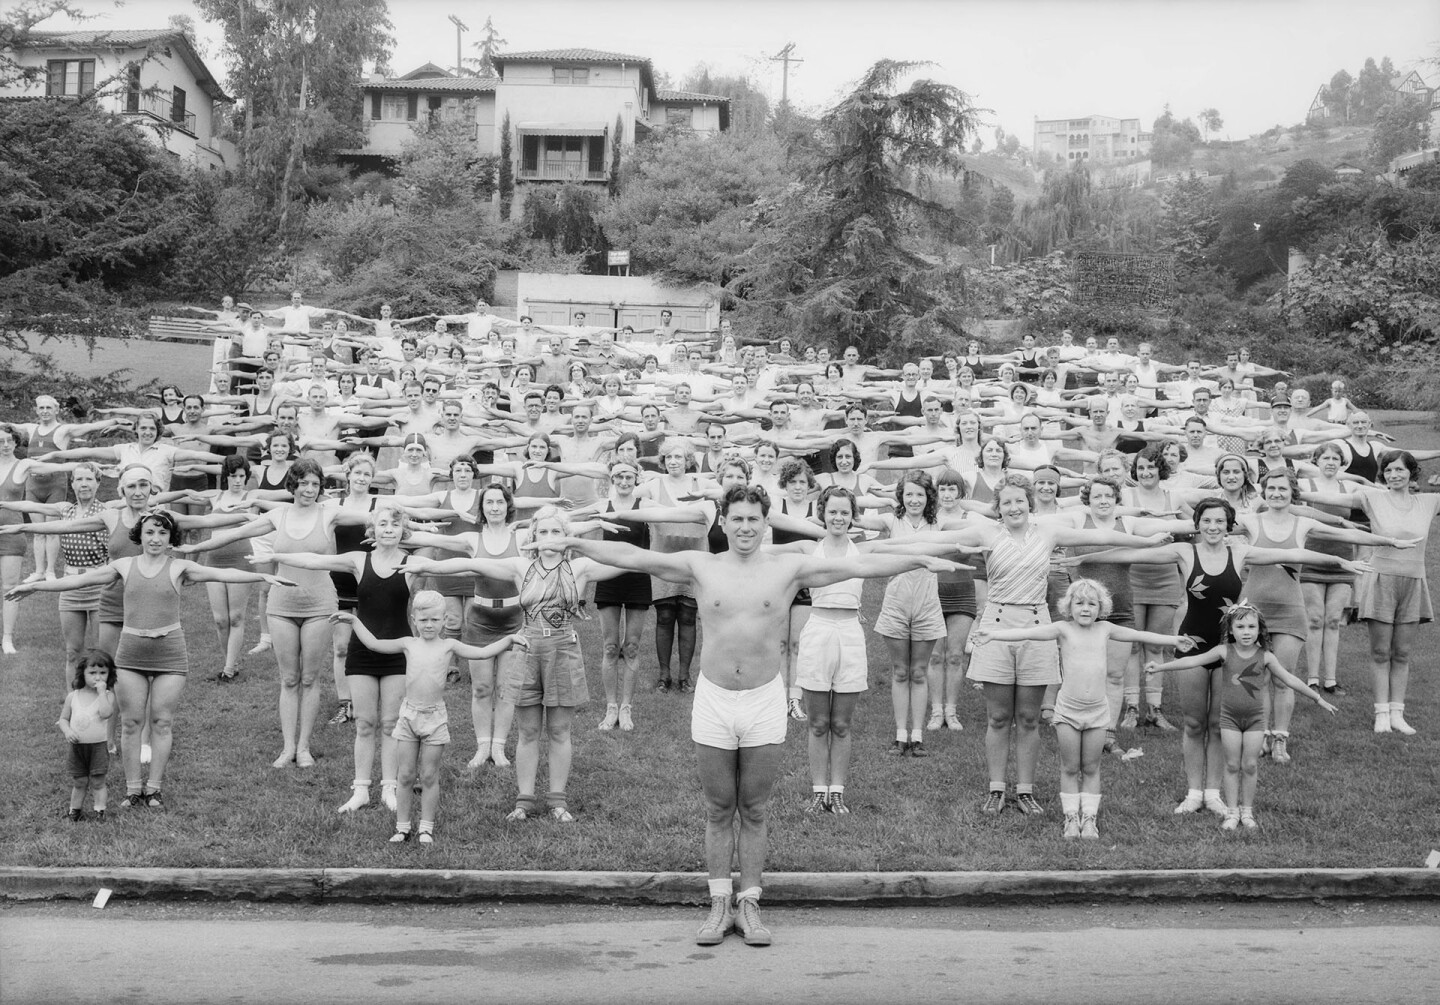 Bragg leads his Wanderlusters in a post-hike workout in Griffith Park, 1932. Courtesy of the USC Libraries - Dick Whittington Photography Collection.